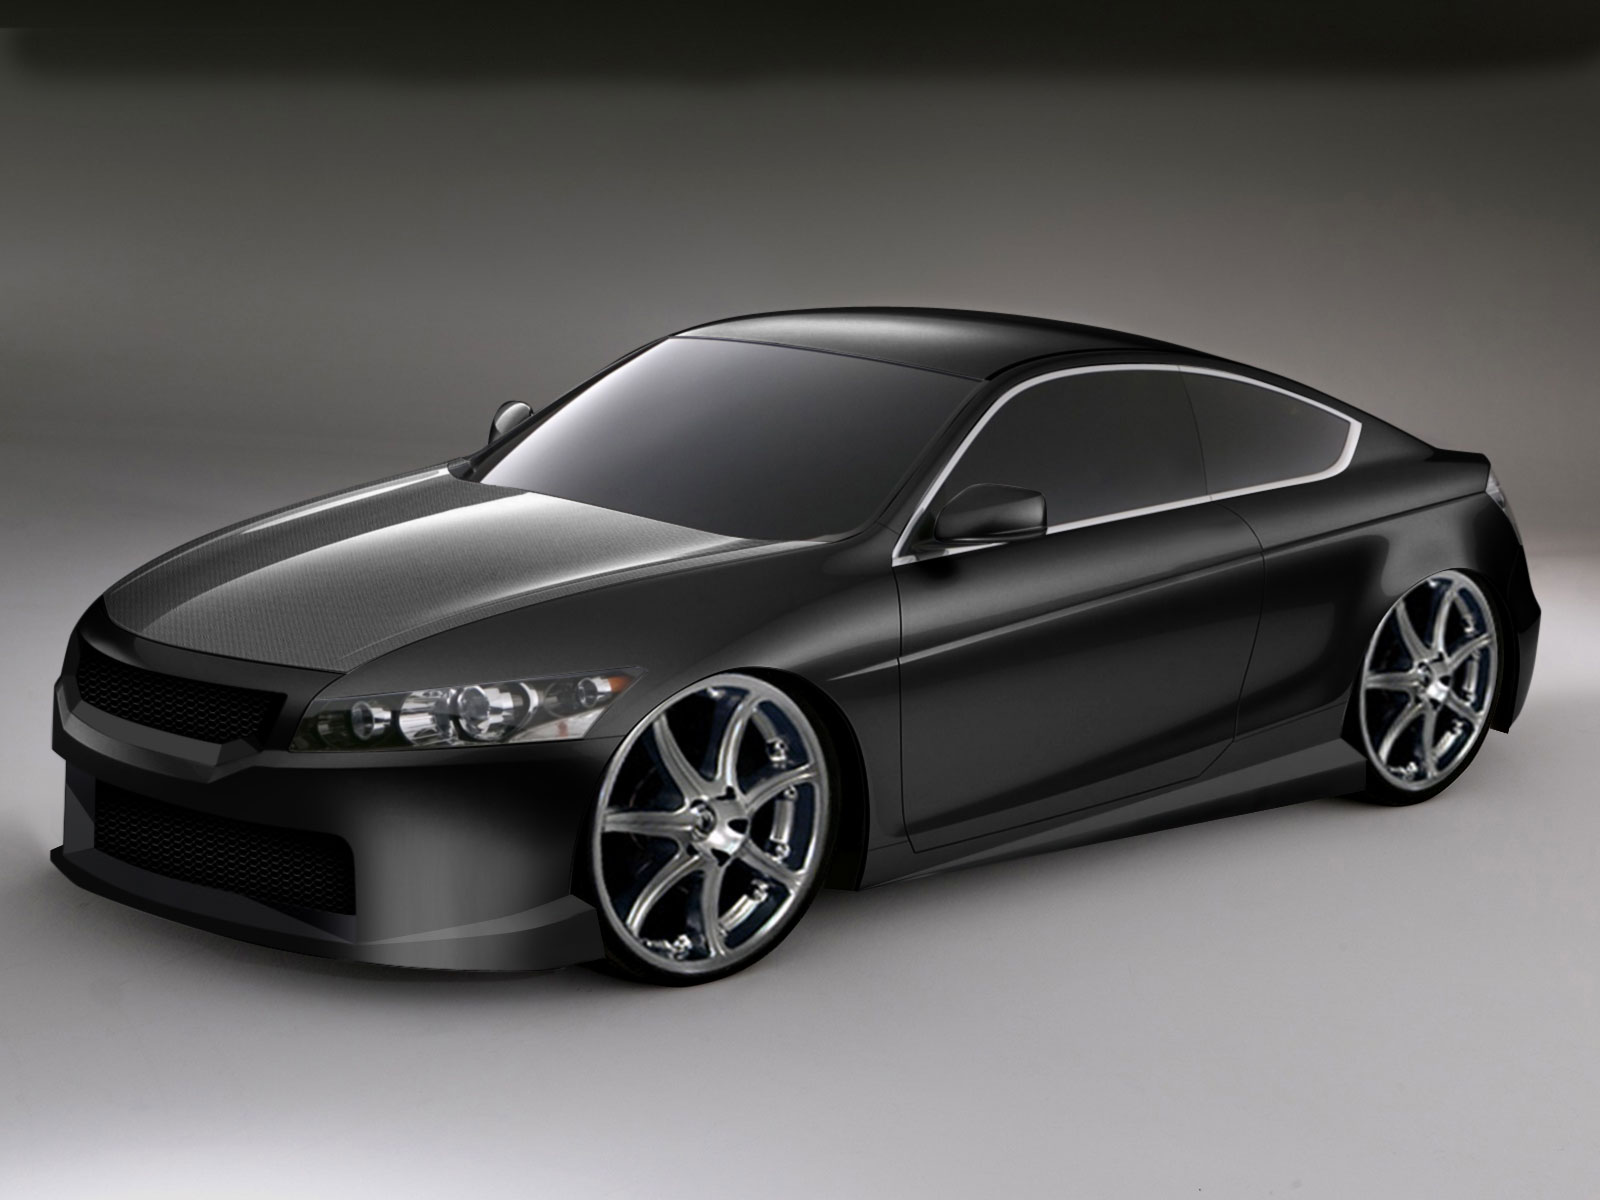 Honda accord coupe concept 200 by aliffarhan on deviantart for 03 honda accord coupe